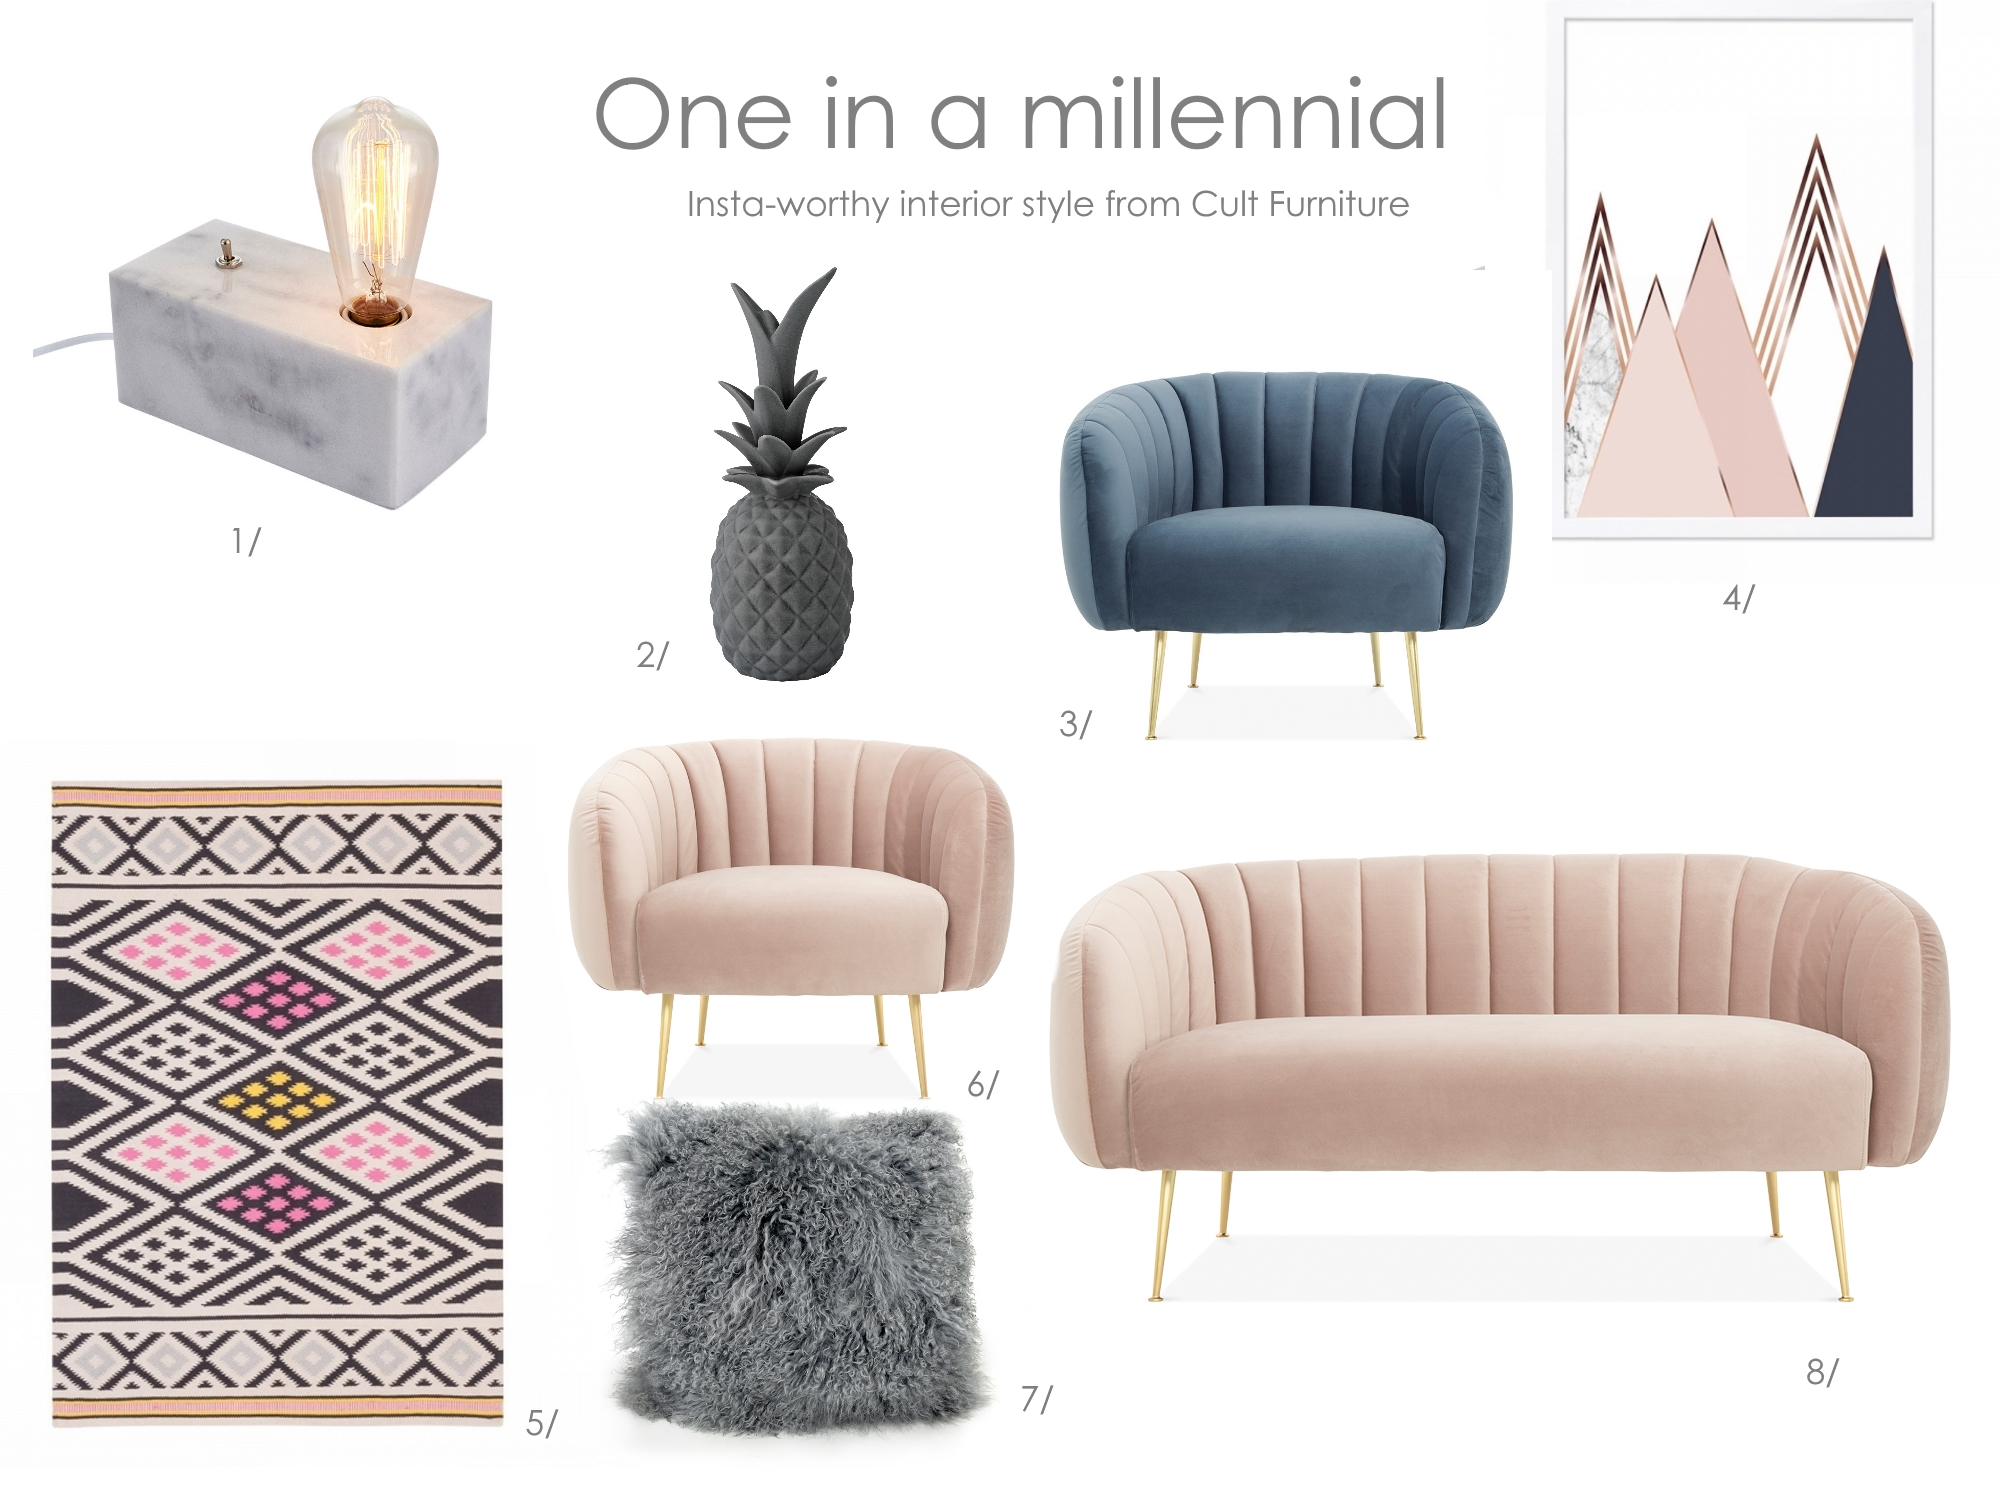 CULT FURNITURE - One in a millennial_ of the age interiors from Cult Furniture.jpg